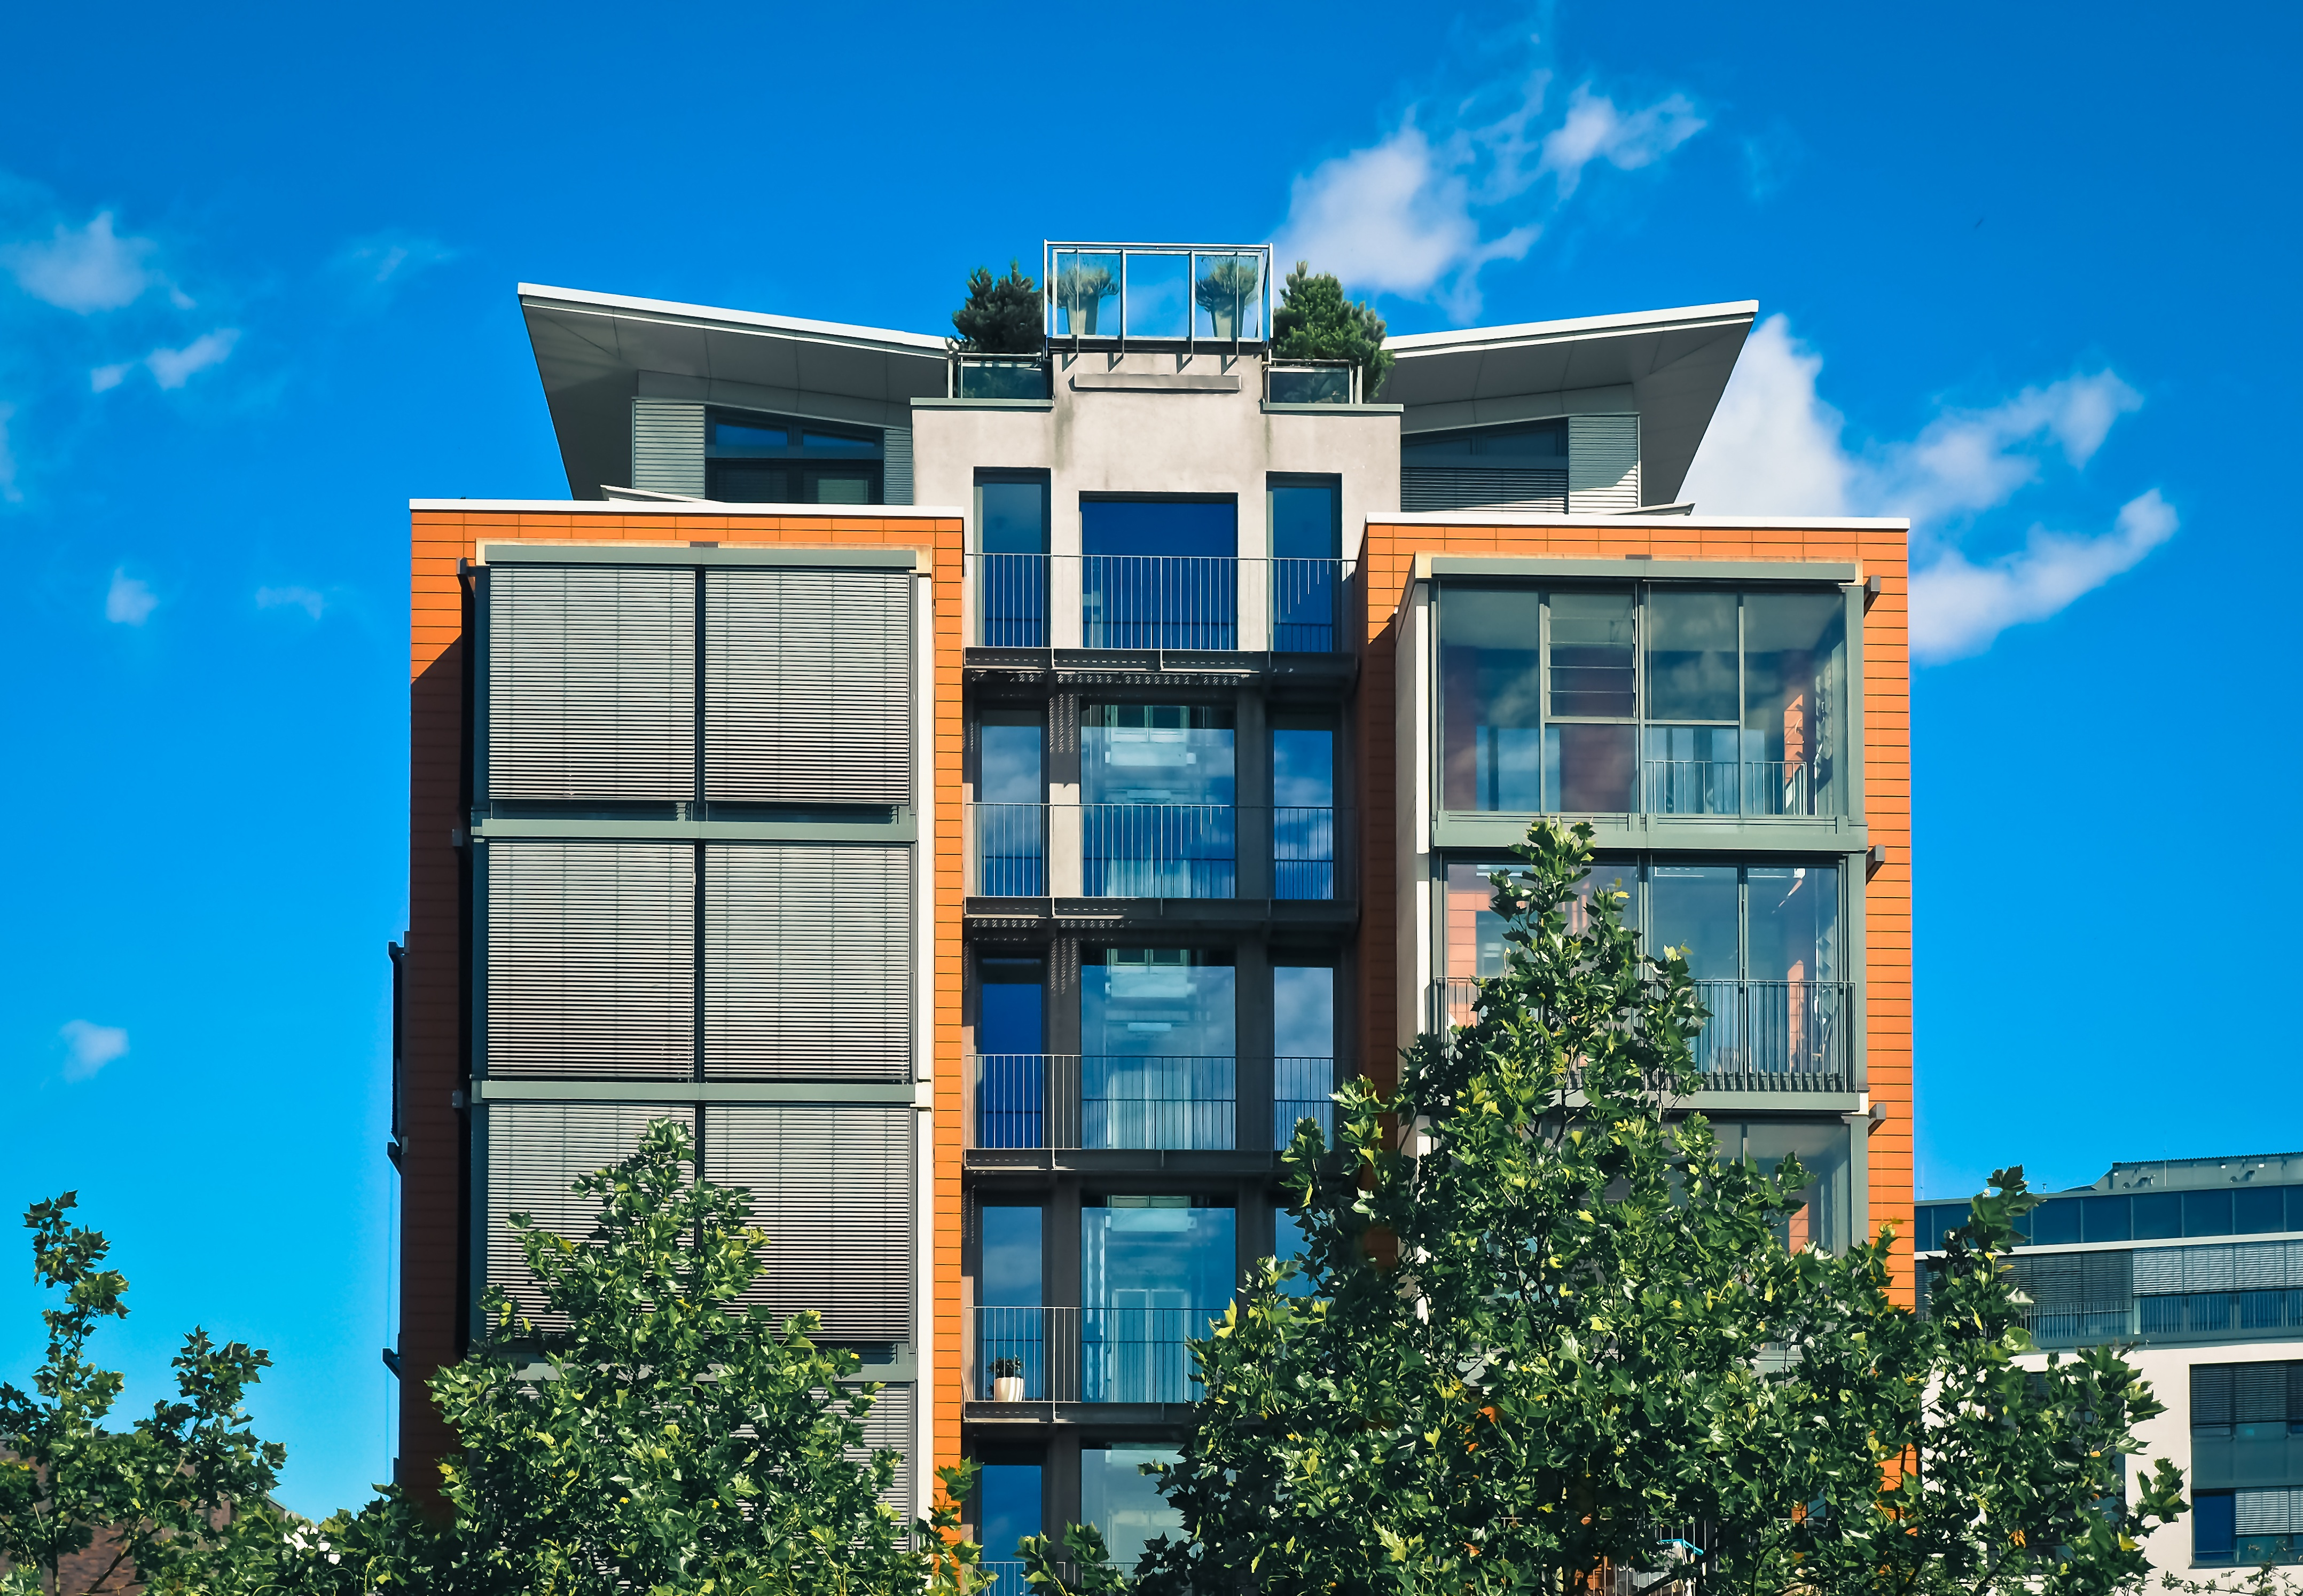 Free stock photo of apartment balcony building for Building balcony